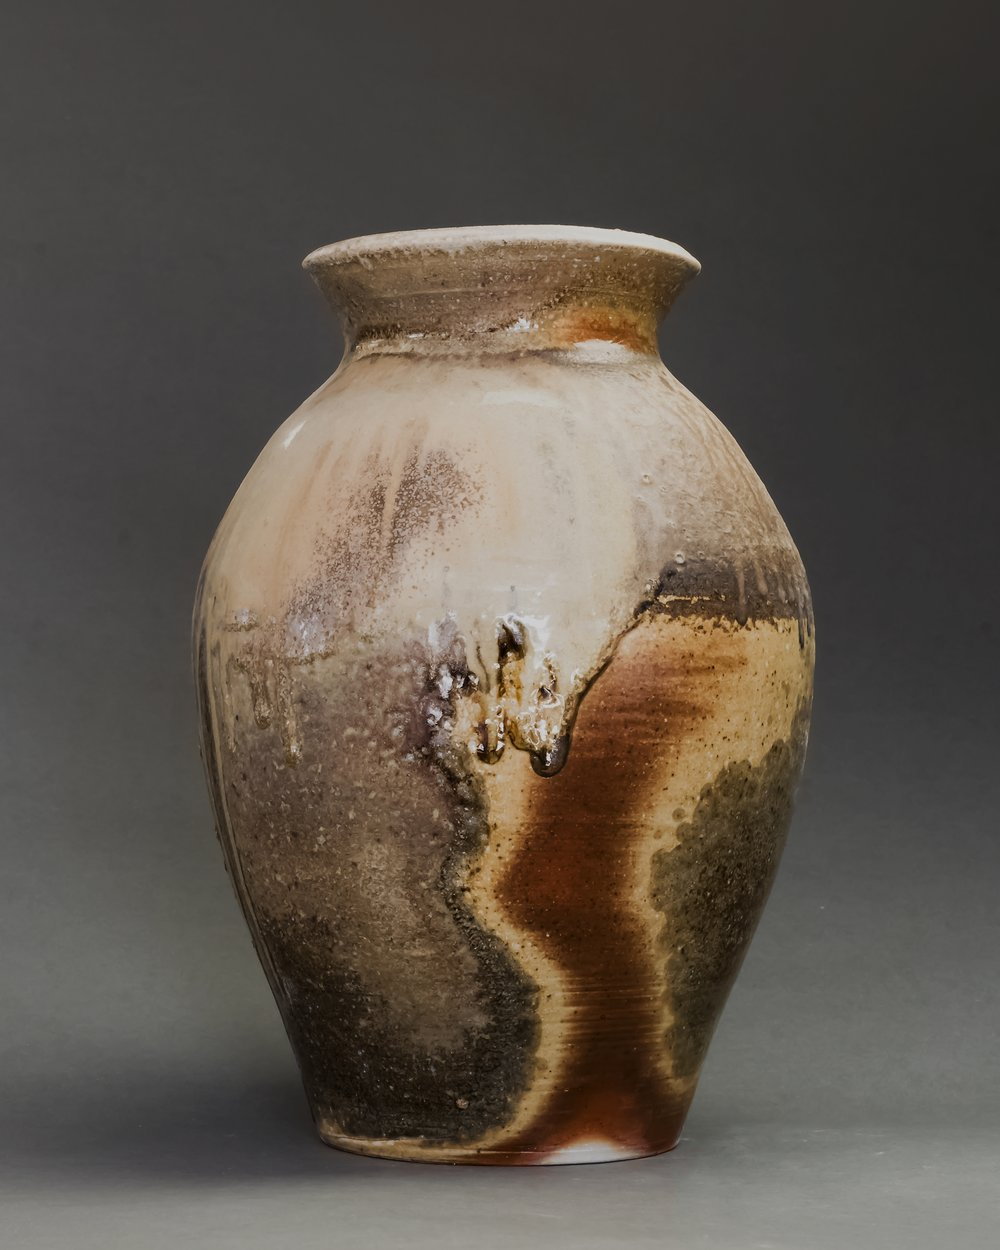 Wood fired vase by Charlie W.    Photography by Erin Berry